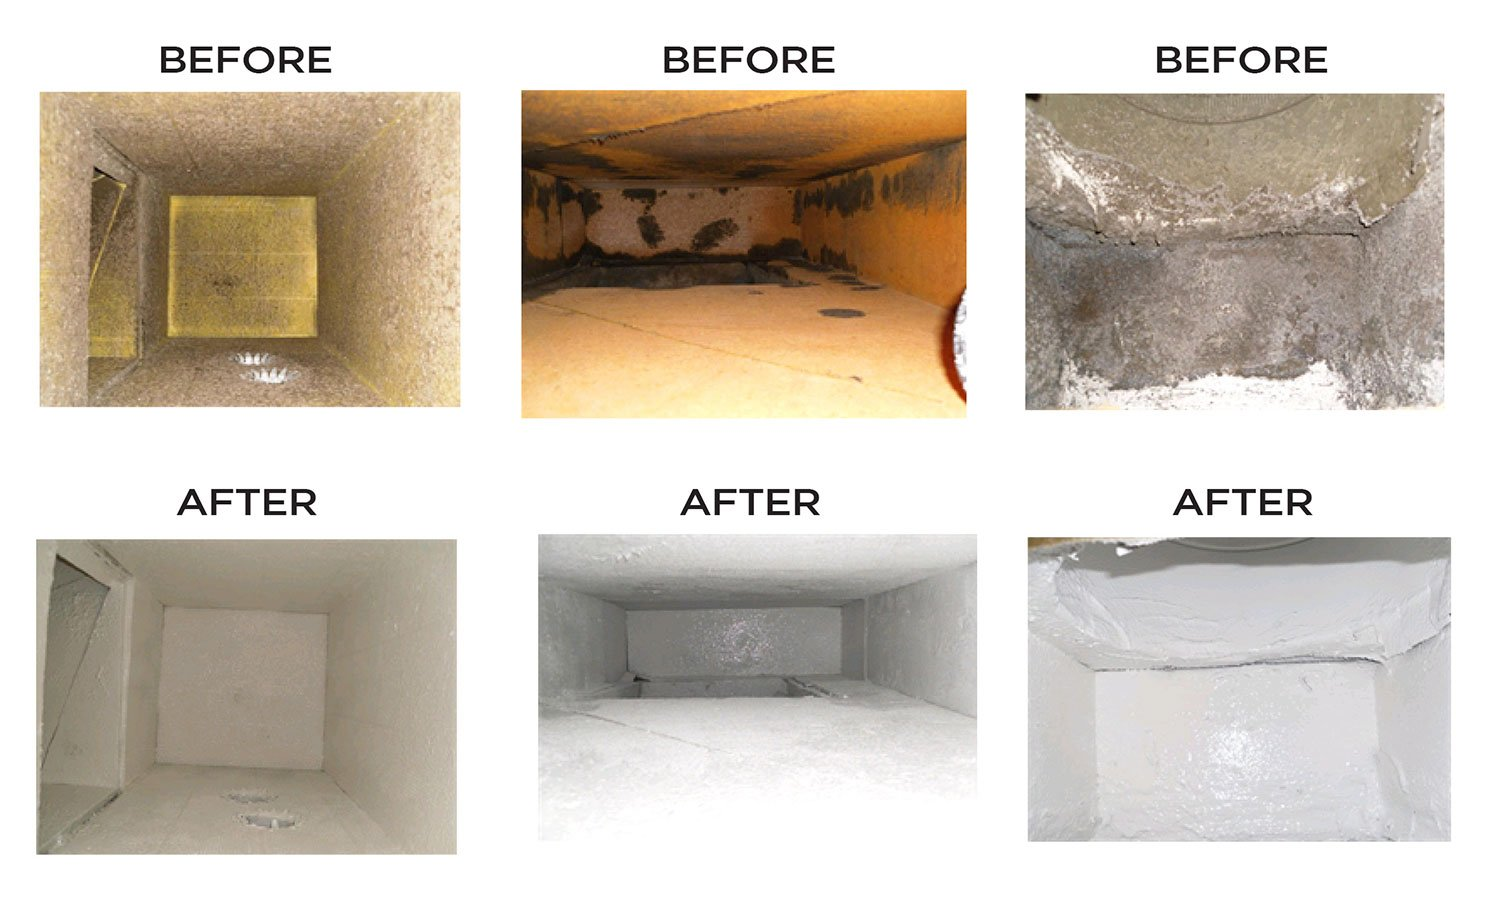 ATC Air Duct Before & After